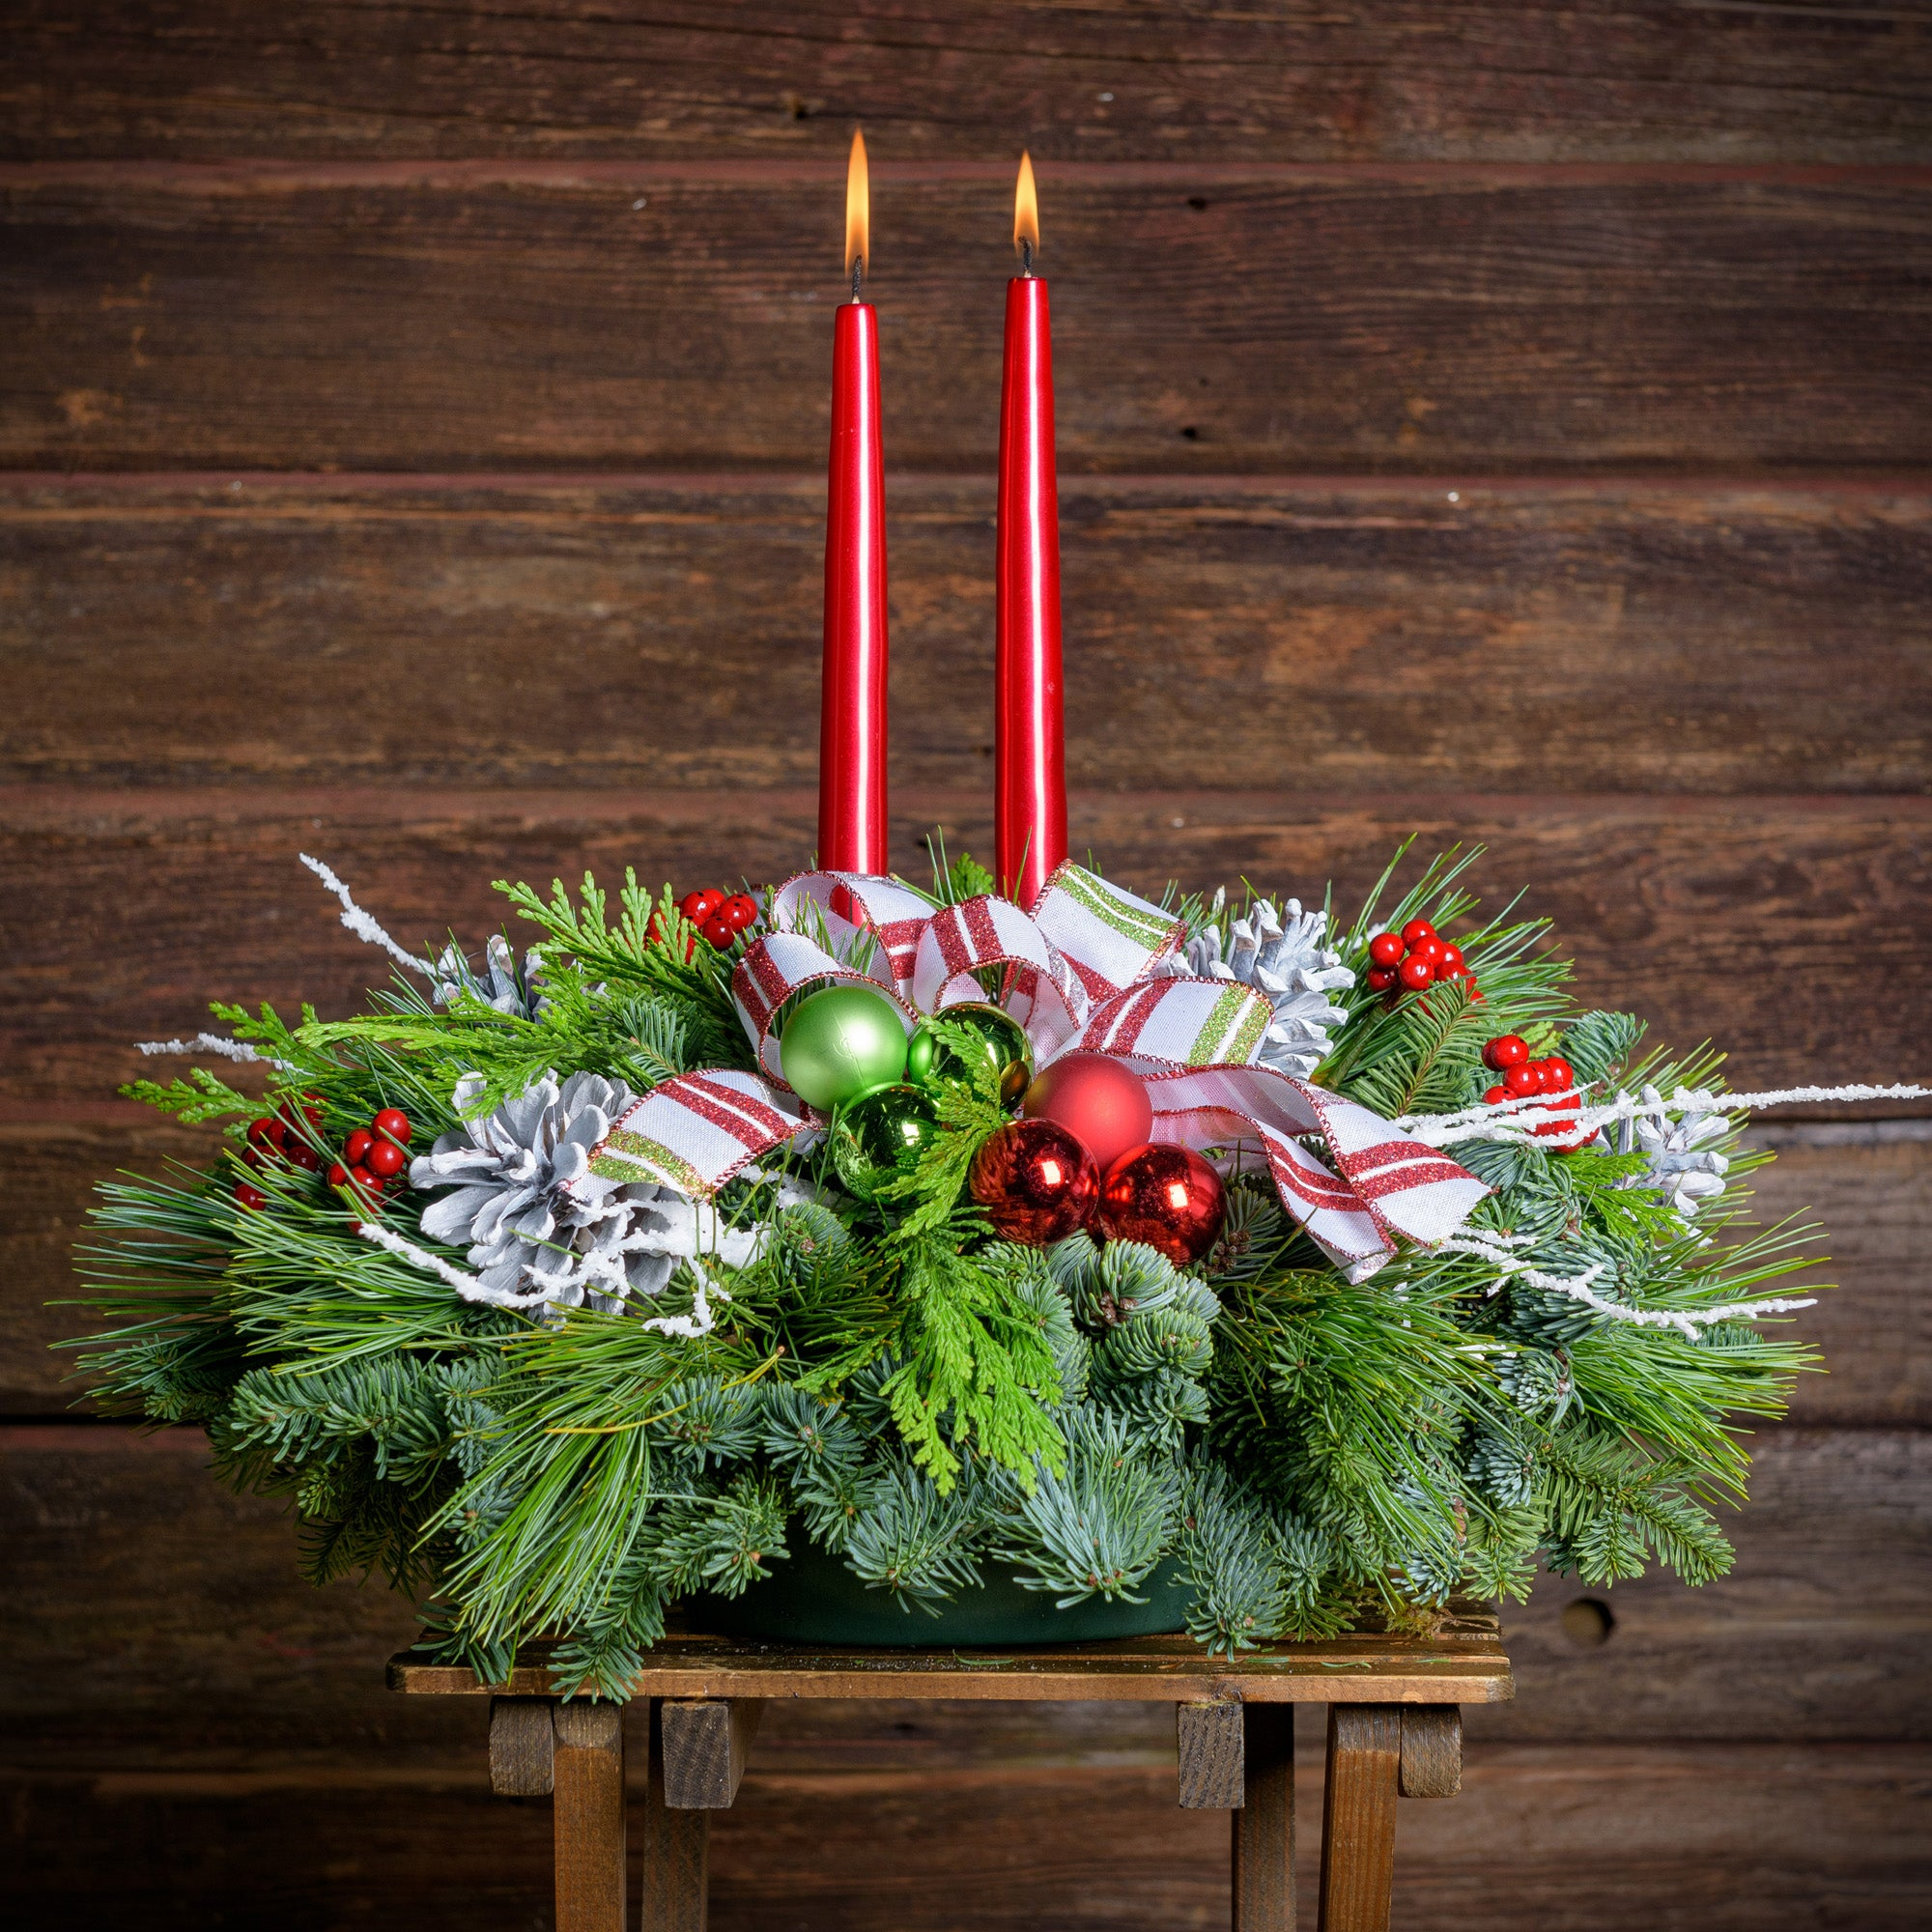 Evergreen Centerpiece with white pine cones, red berries, white twigs, red & green balls & a red & white glitter-striped bow